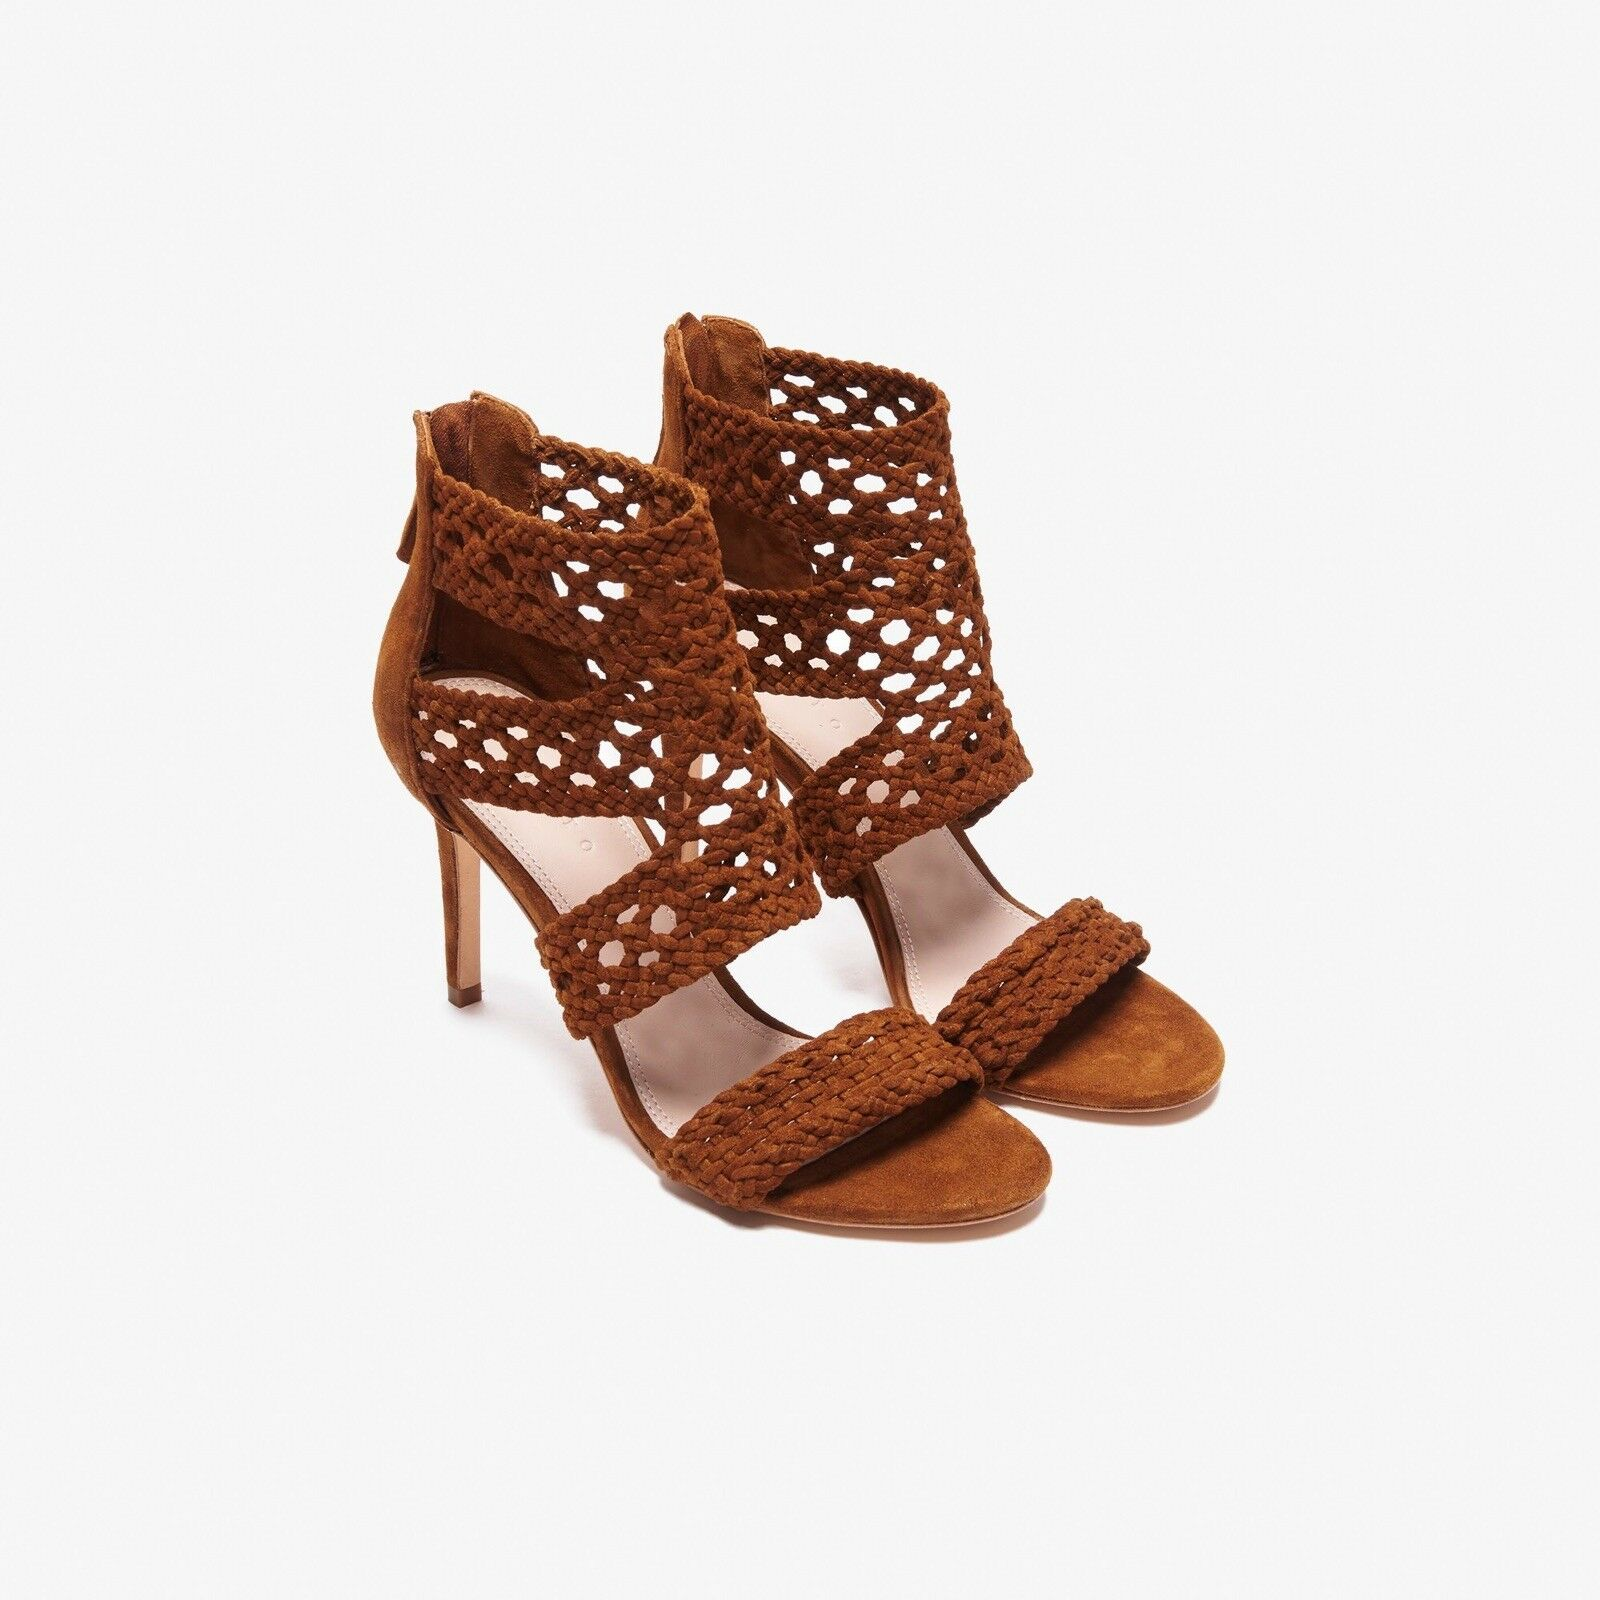 Sandro Suede Heeled Sandals Sz 9.5US 40France Retail  570  Agate Brown color